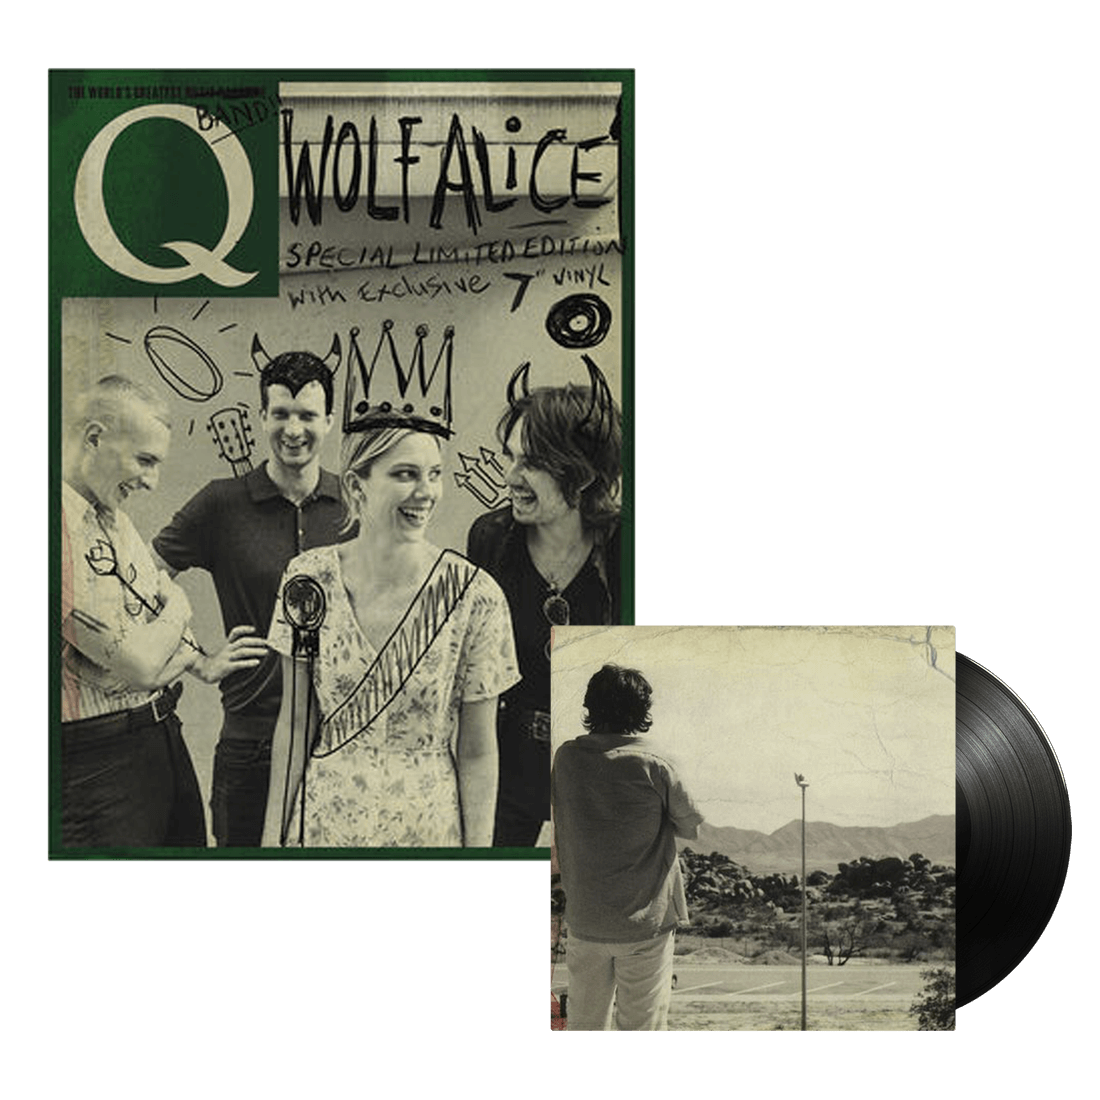 "Wolf Alice: Special Limited Edition Q Magazine with Exclusive 7"" Vinyl"